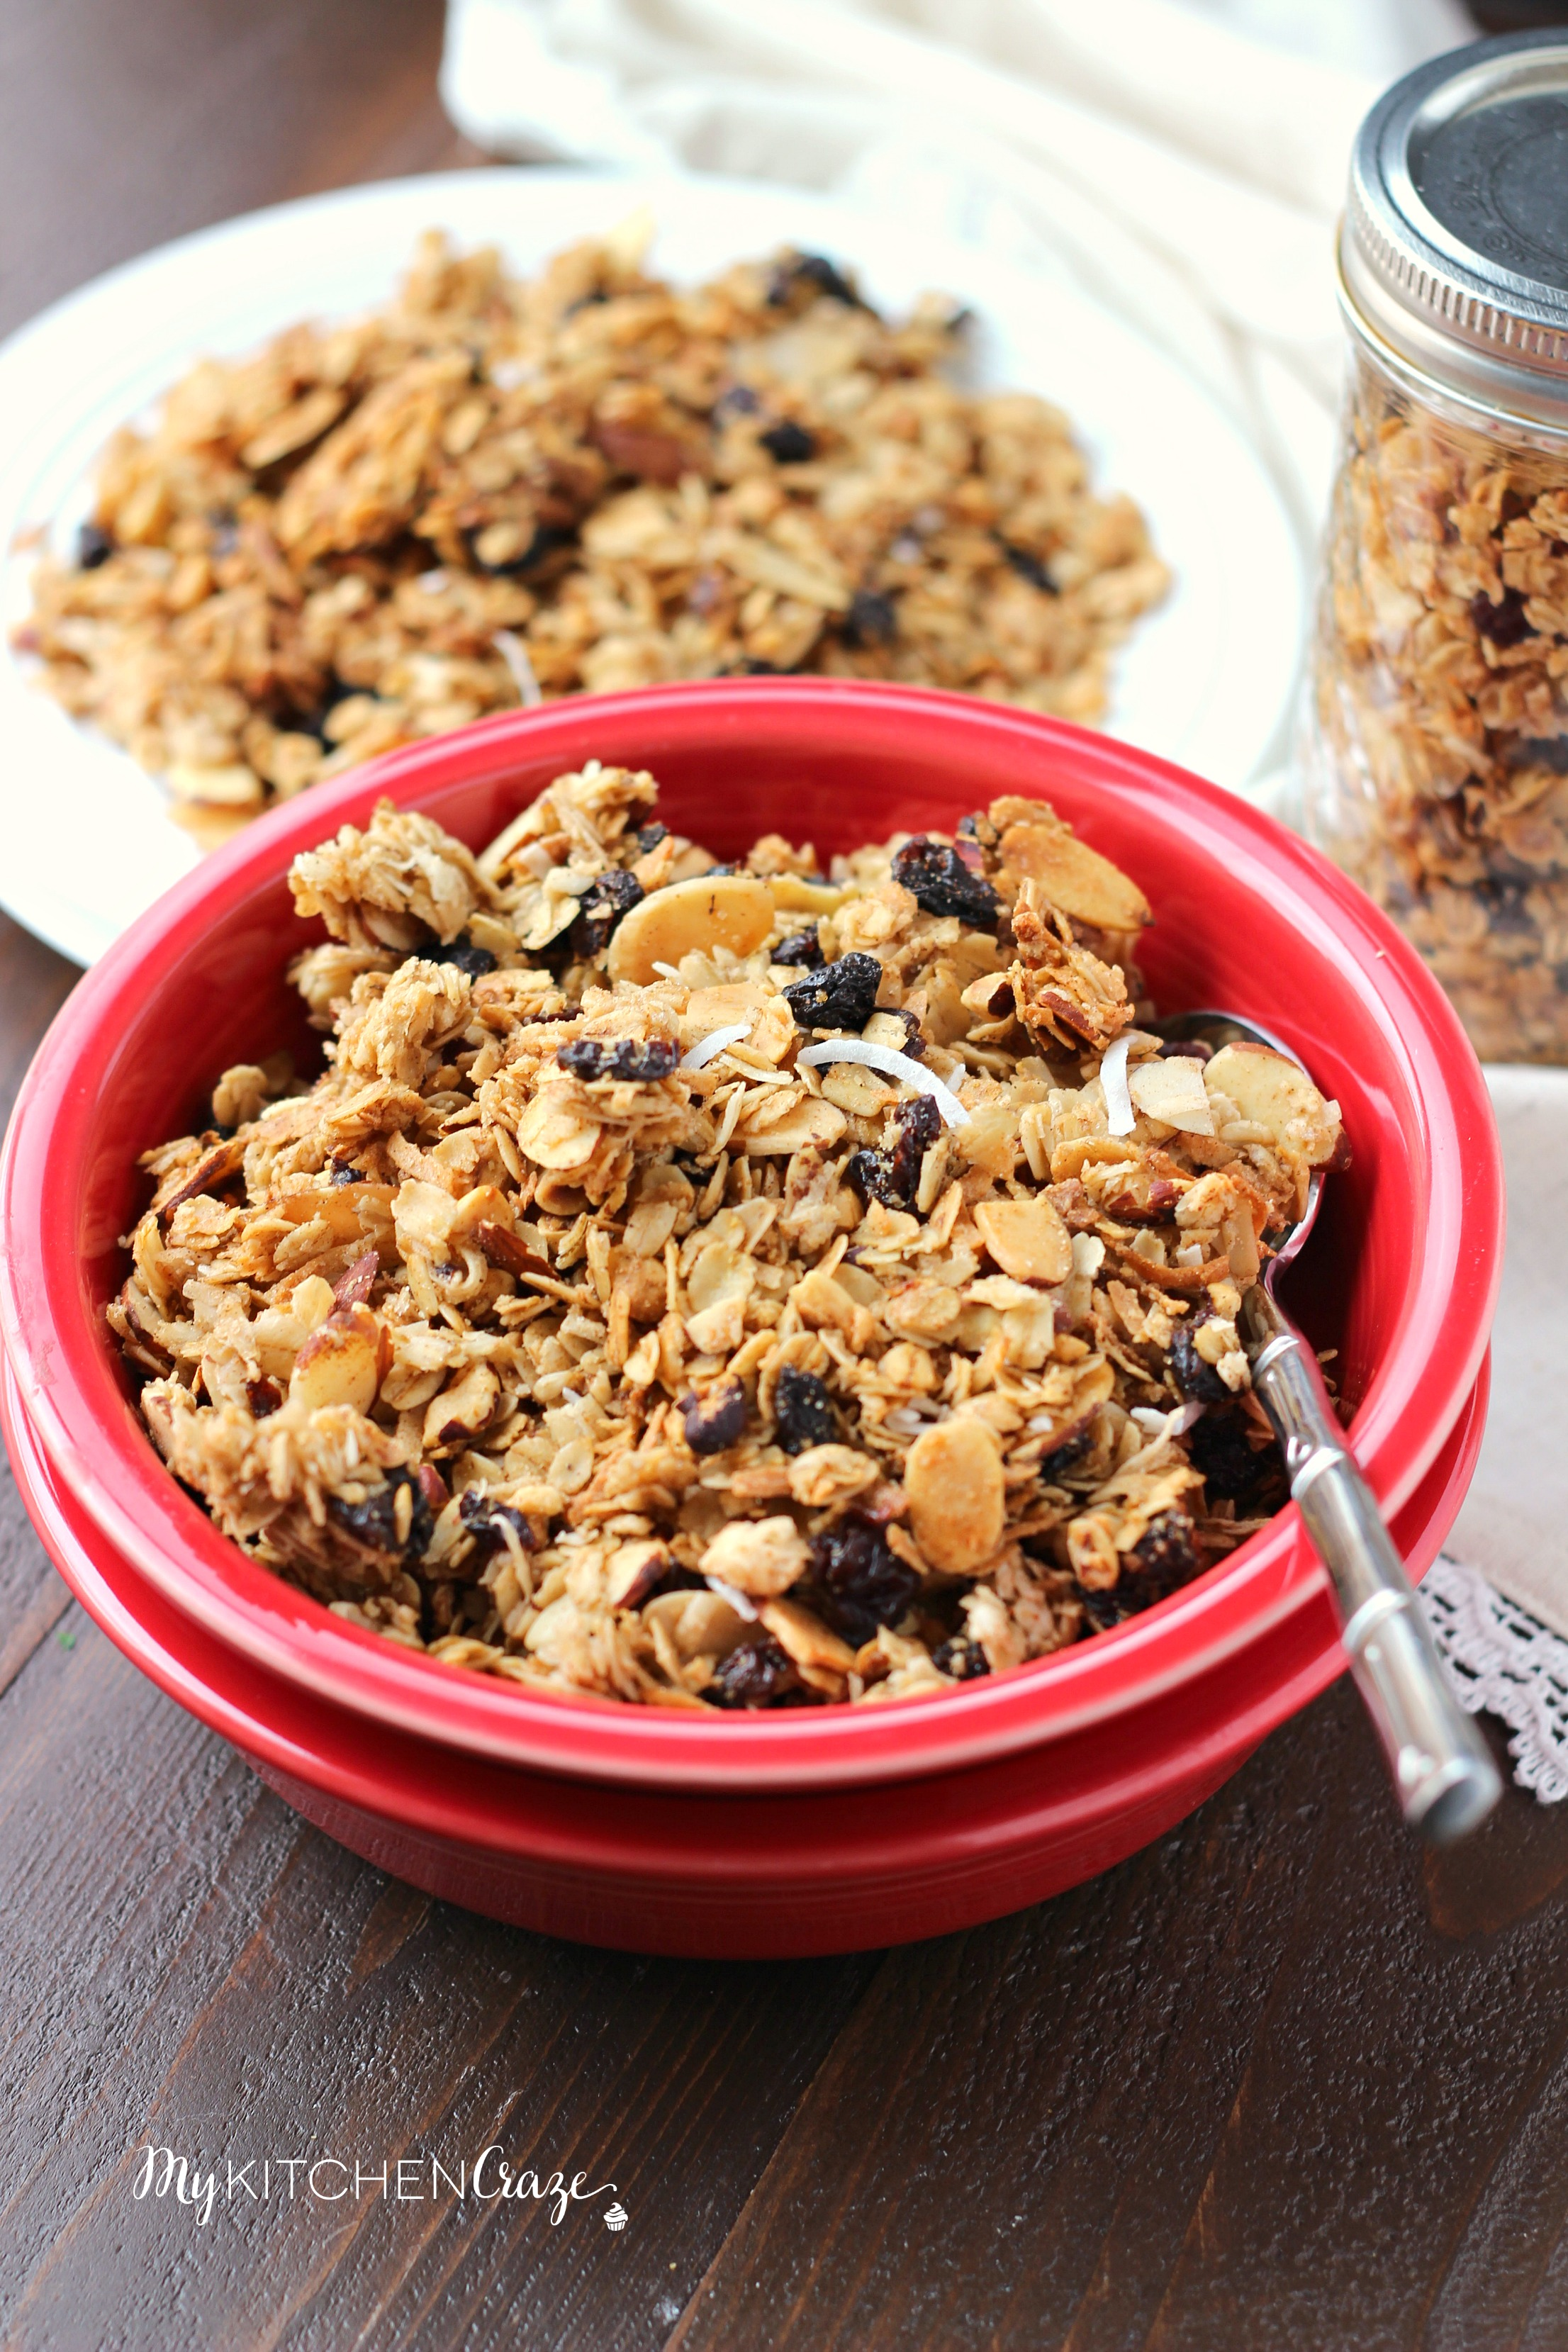 Cherry Coconut Granola ~ mykitchencraze.com ~ A simple and delicious granola made in the comfort of your own home. Made with coconut, dried cherries, almonds and hazelnuts. This granola won't last long in your house!